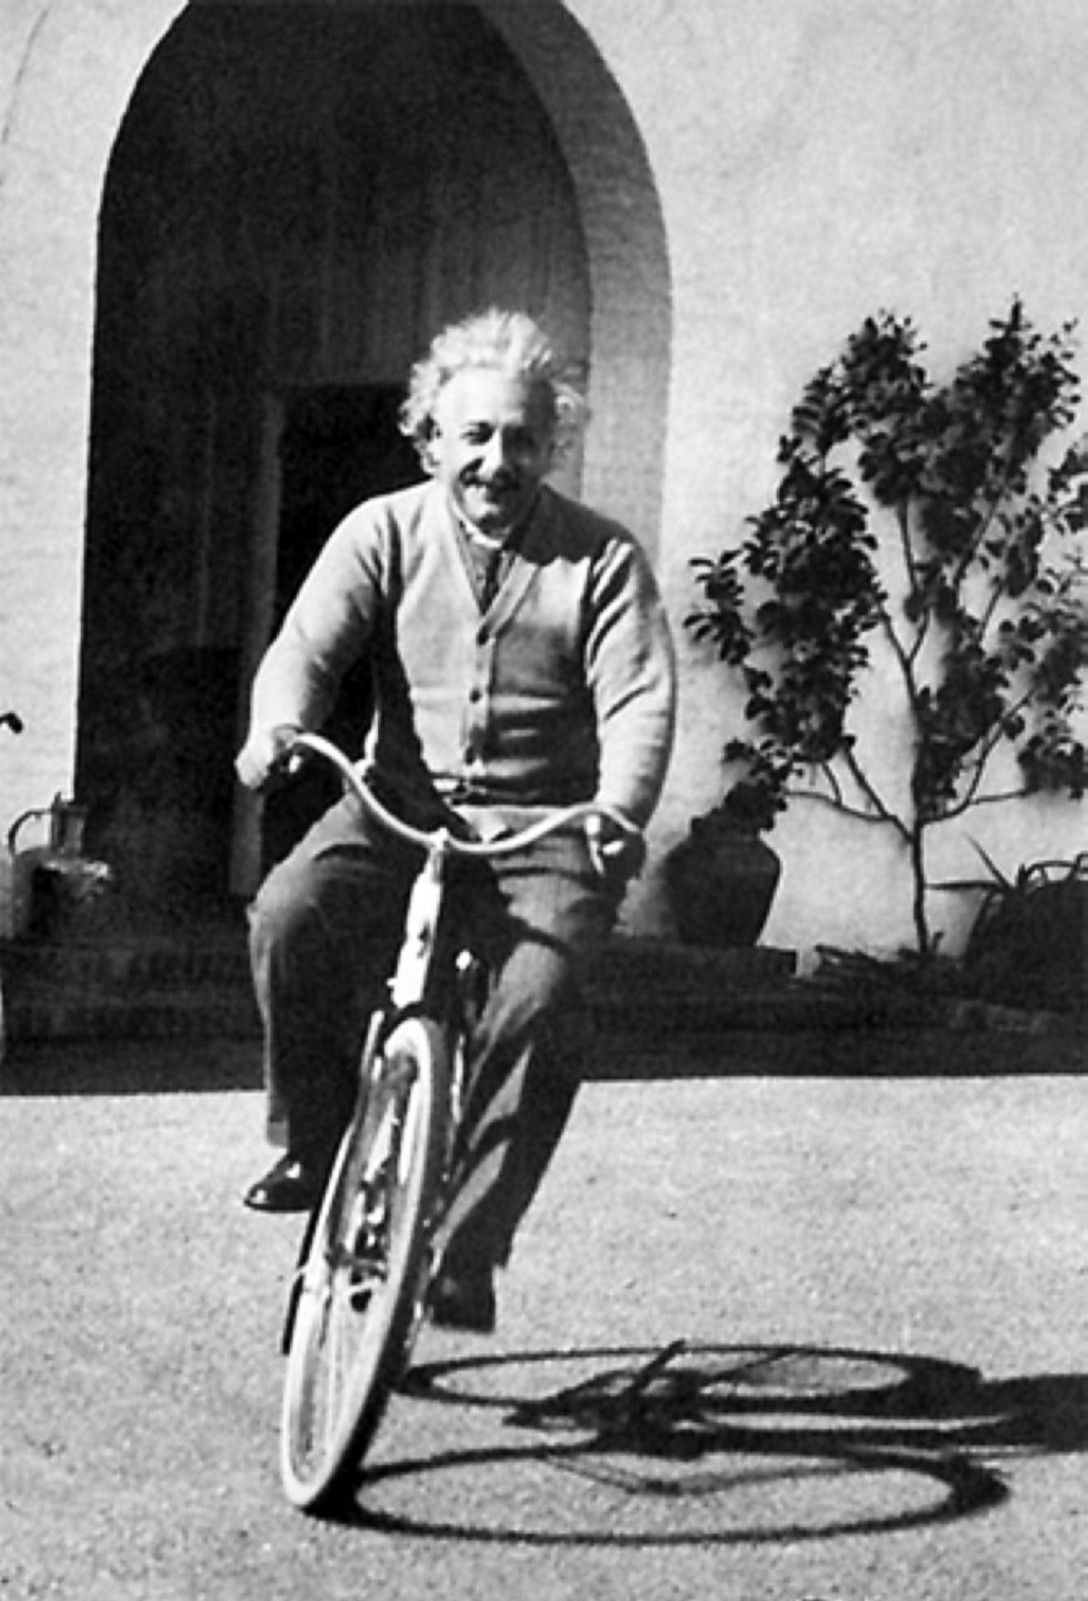 einstein-bicicletta-cult-foto-photo-cultstories